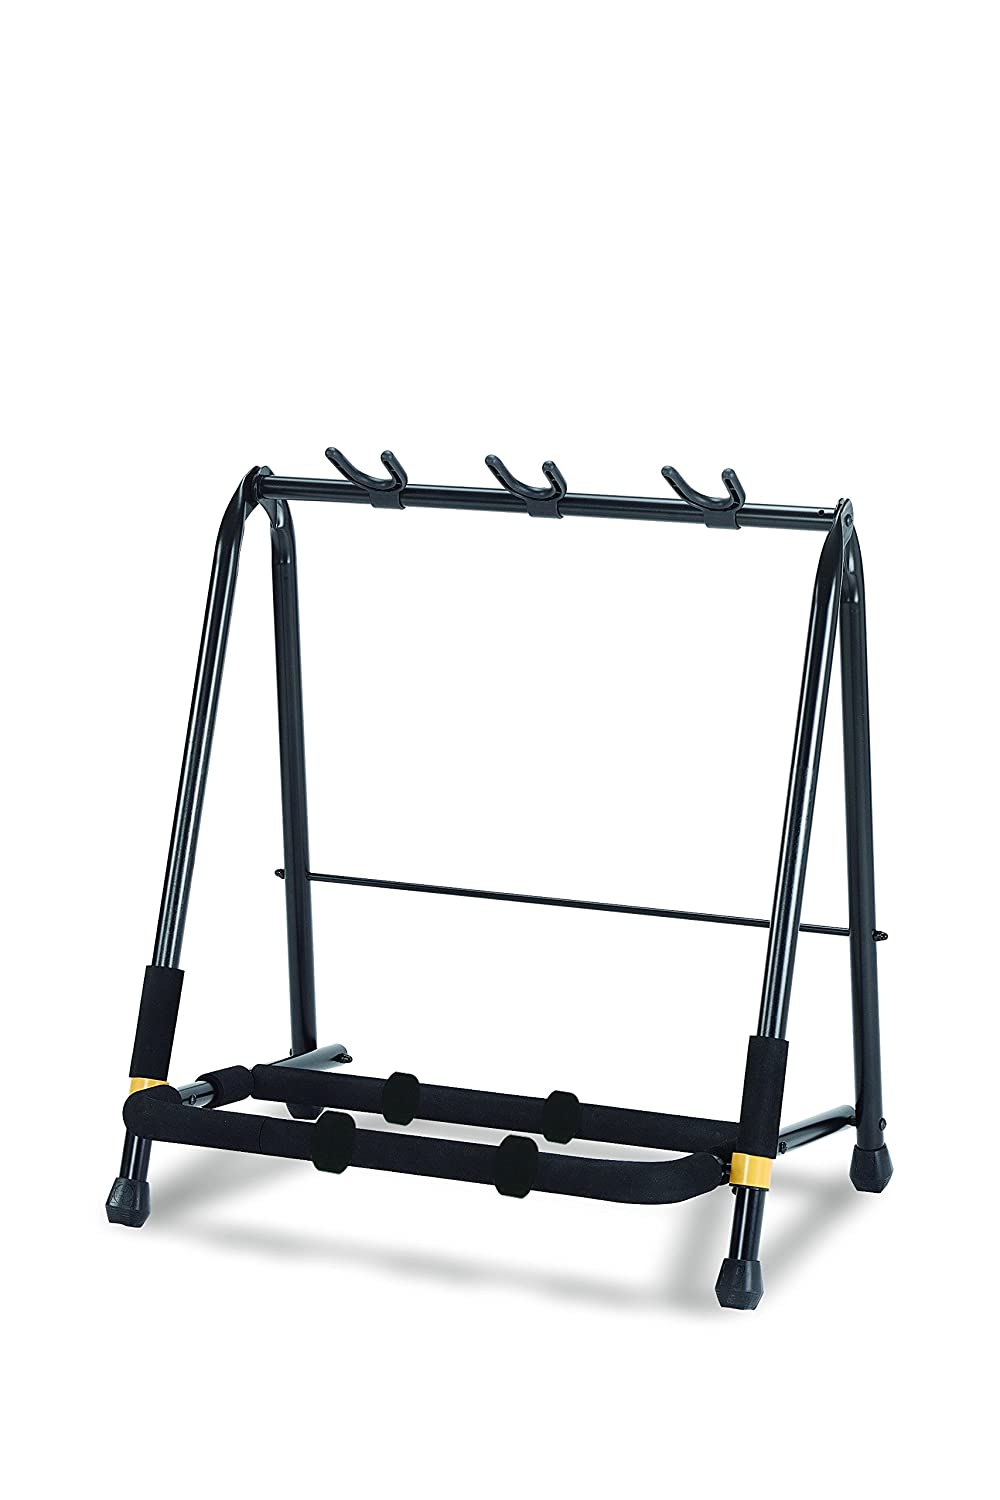 Hercules Stands GS523B Three-Instrument Guitar Rack